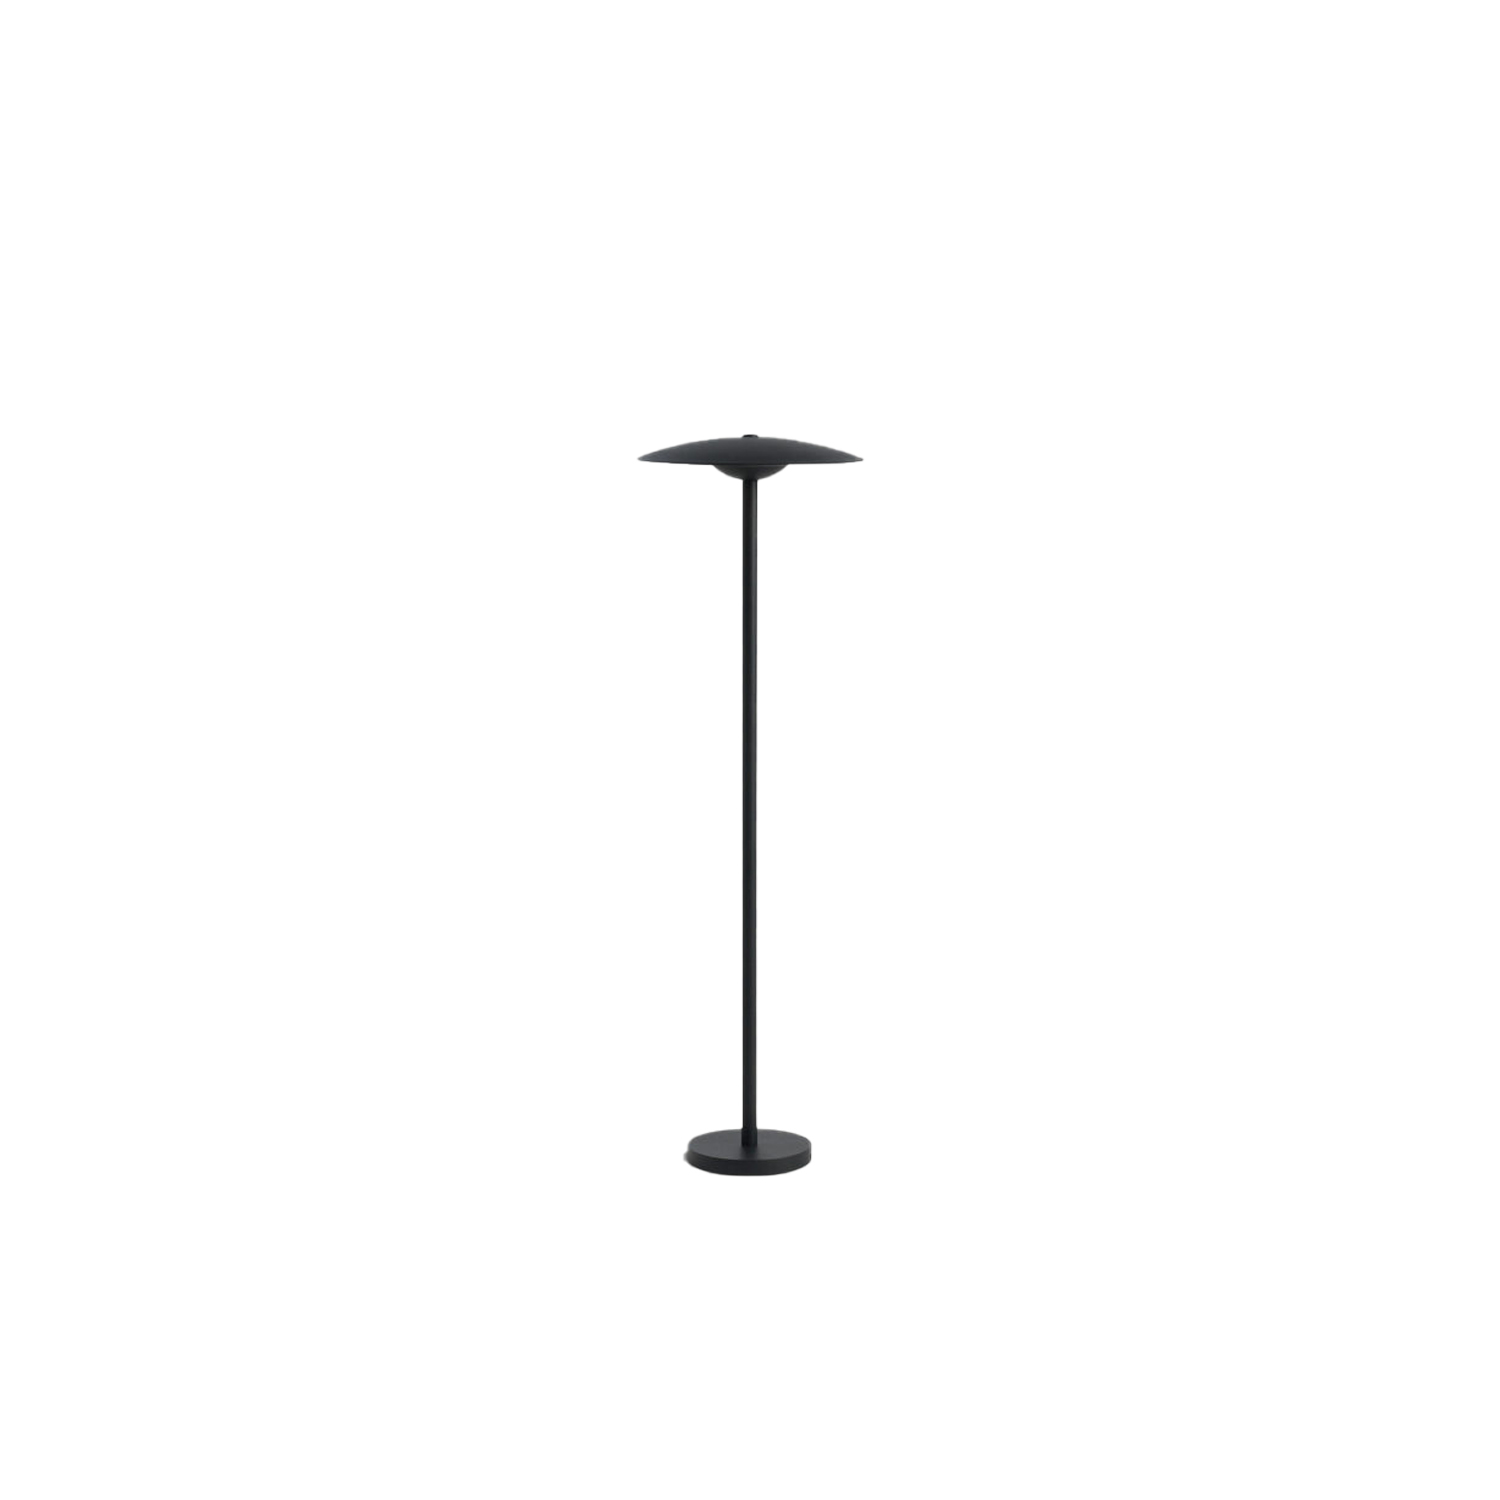 Ginger B 20/63 Outdoor Floor Lamp - The Ginger collection is moving outdoors, with wall sconces that can be installed individually or in a cluster, a new 15 cm sconce —perfect for passageways and small outdoor areas—, a lamppost and small floor lamps.